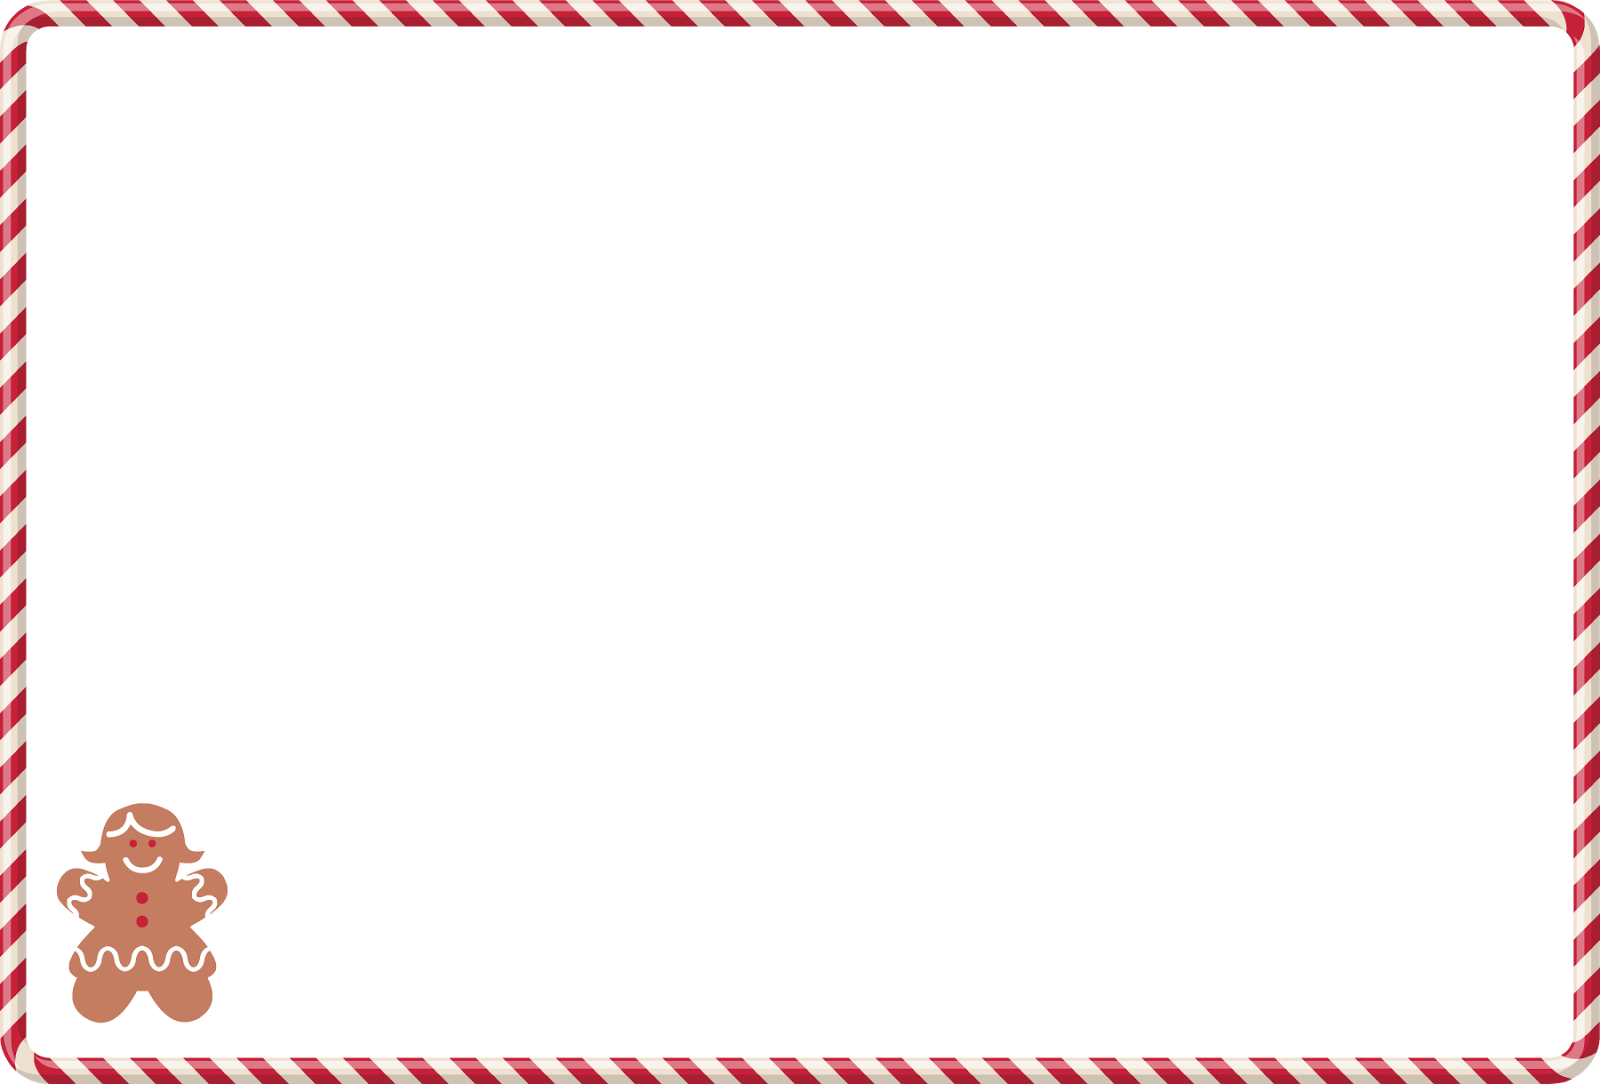 Blank Christmas Cards For Printing Pictures to Pin – Blank Xmas Cards